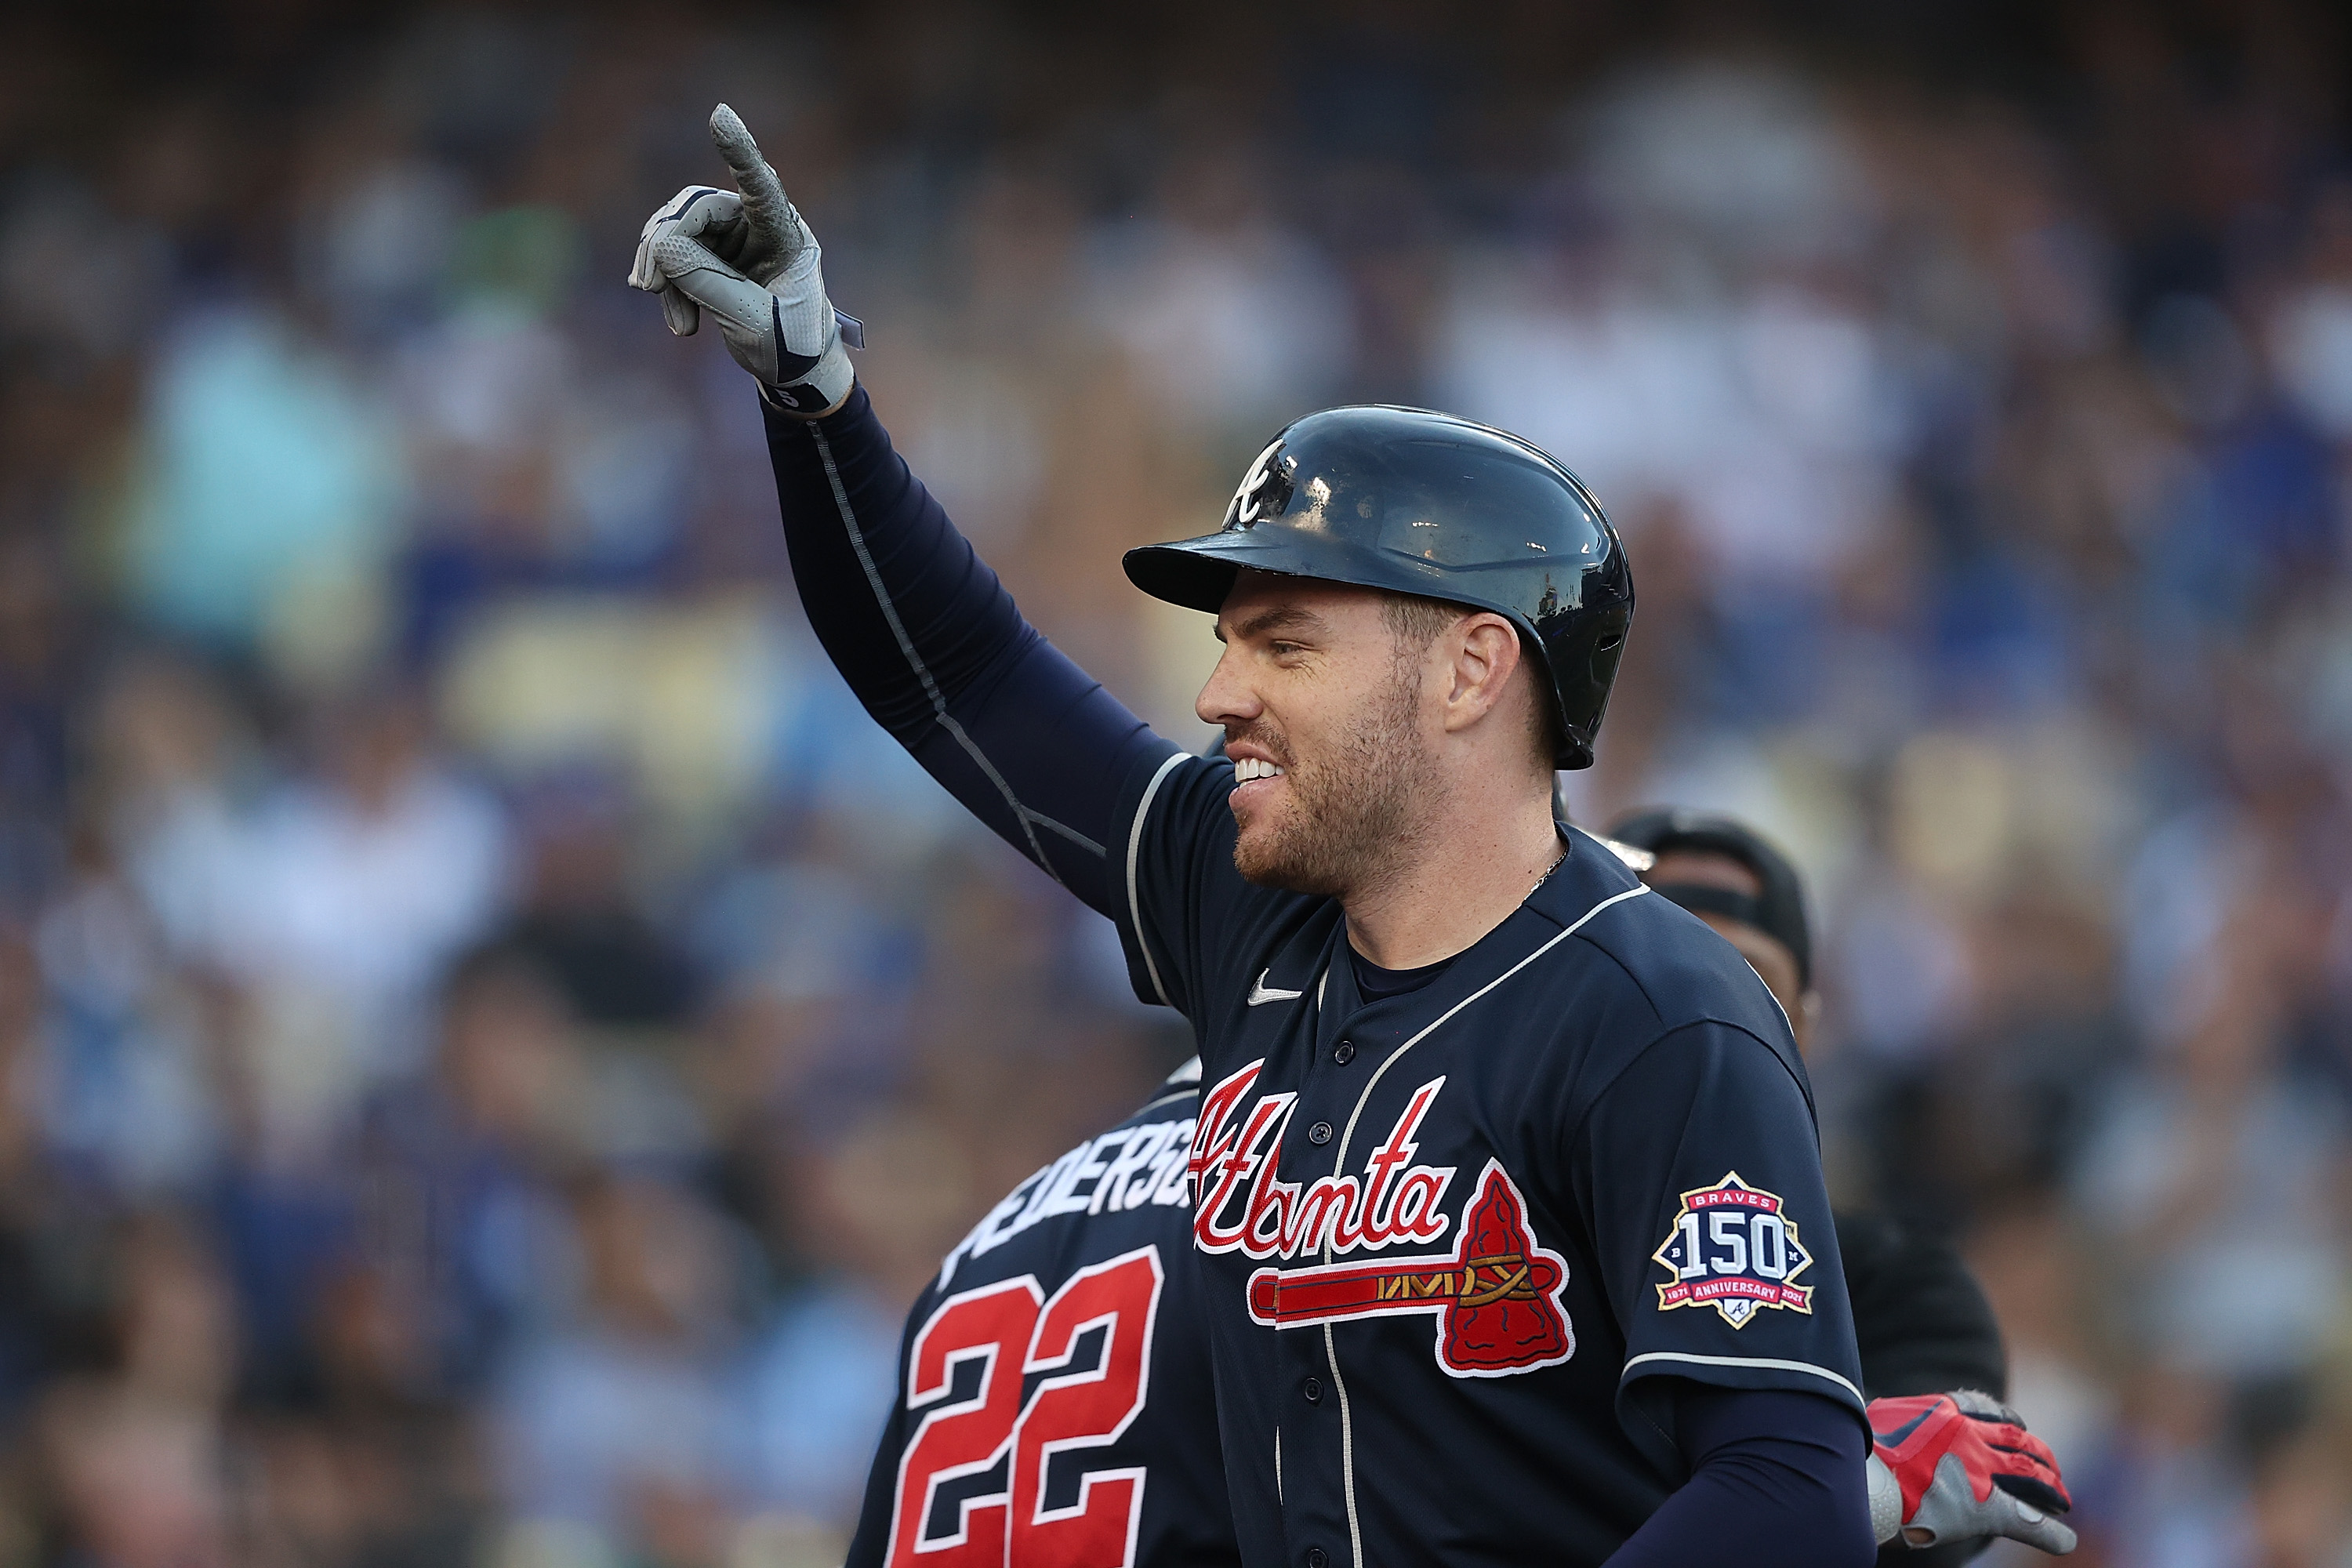 Freddie Freeman #5 of the Atlanta Braves celebrates a two run home run during the first inning of Game Five of the National League Championship Series against the Los Angeles Dodgers at Dodger Stadium on October 21, 2021 in Los Angeles, California.